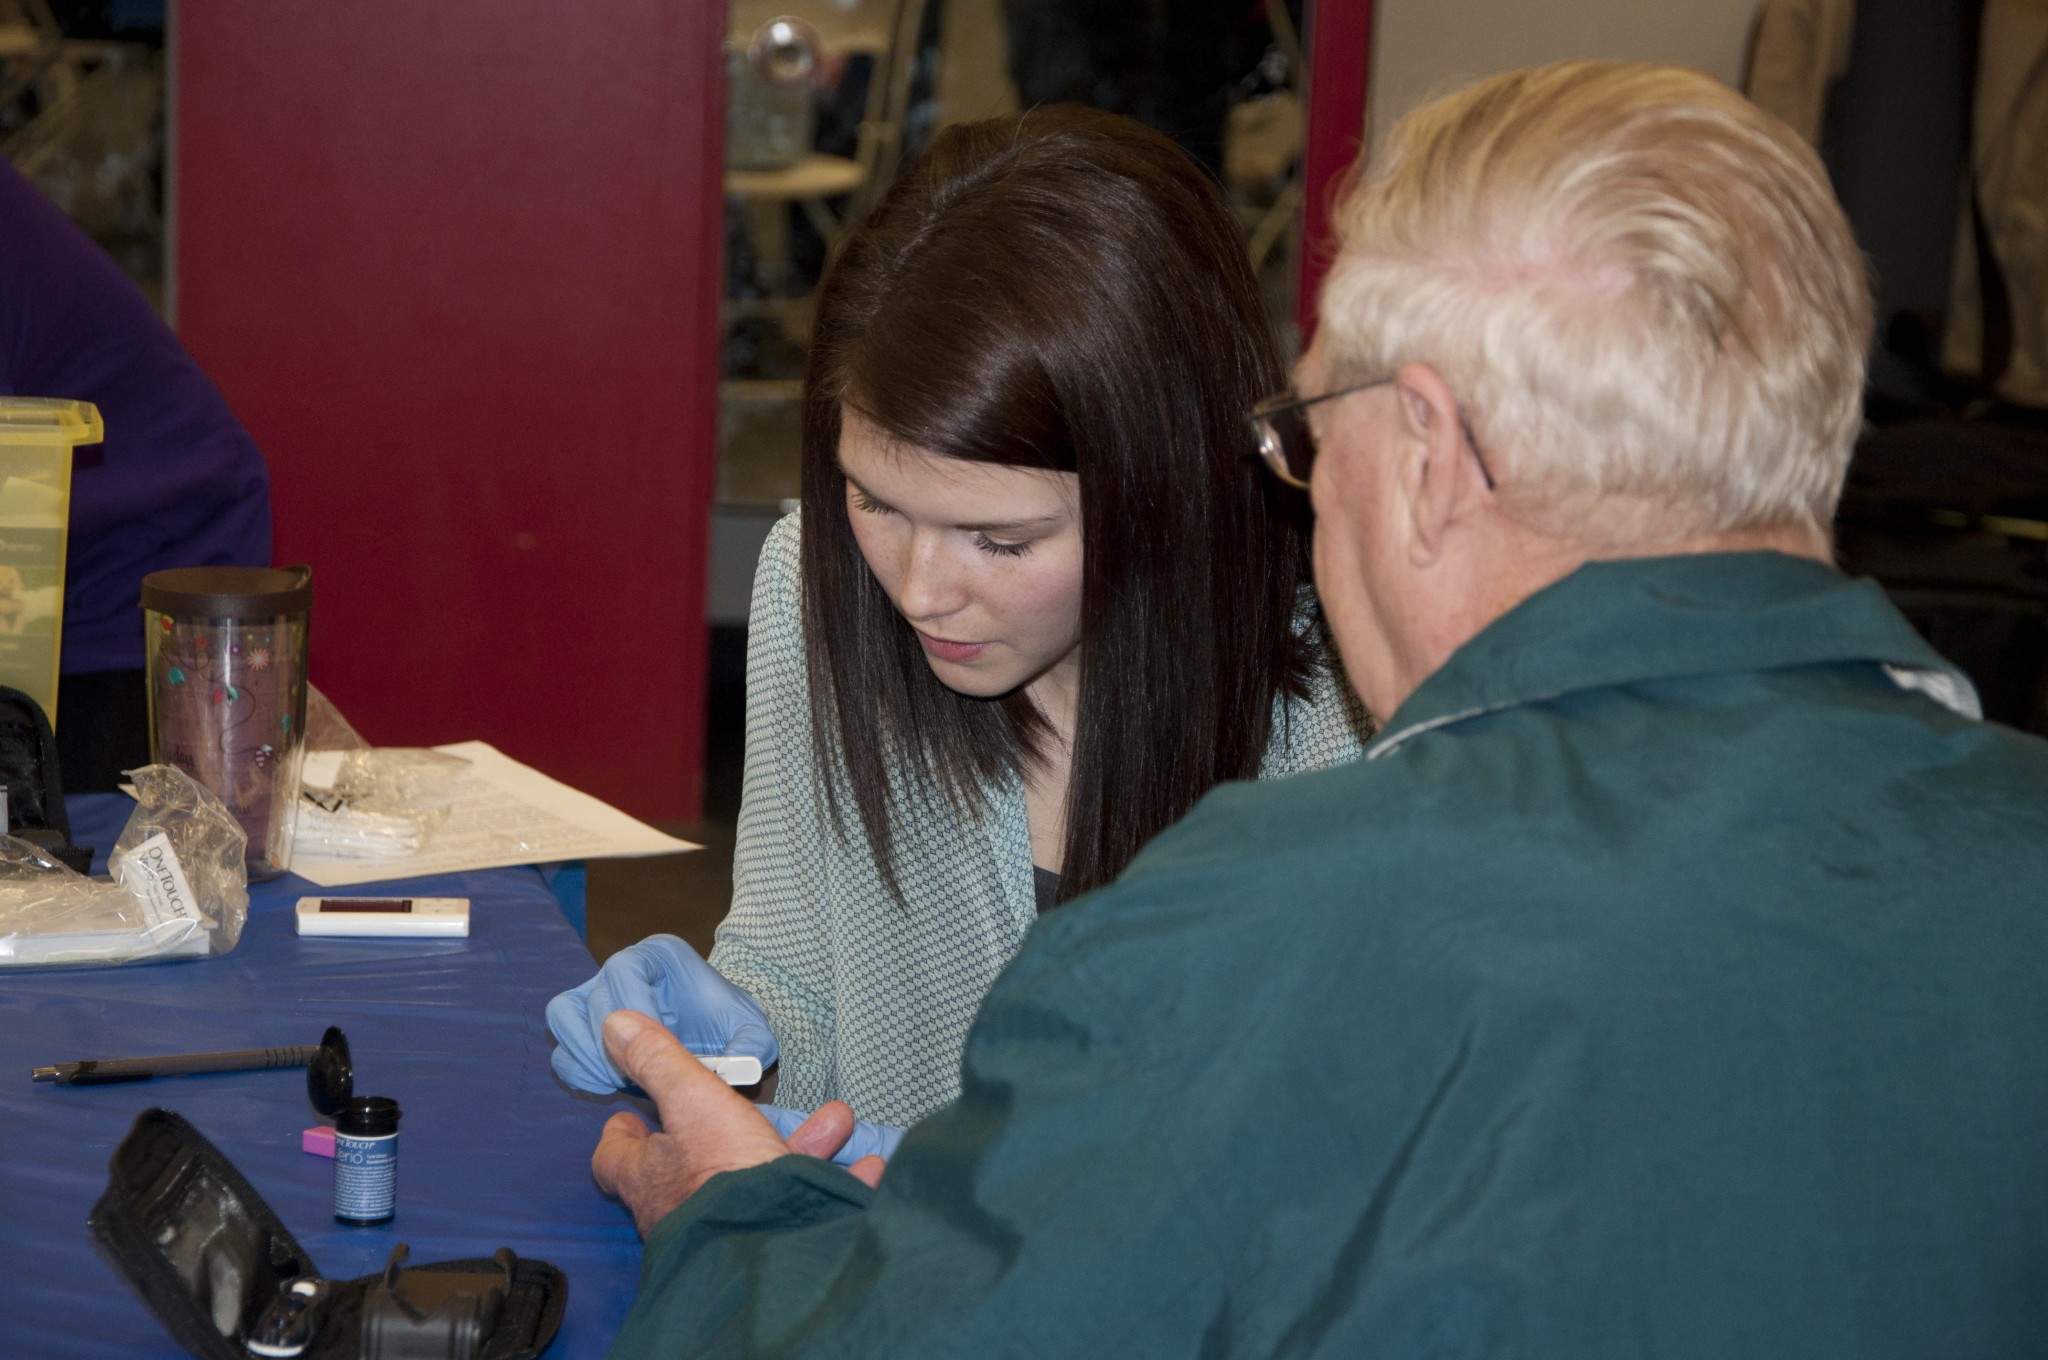 Nursing student Chelsea Brown volunteered to educate patients and assess blood glucose levels at World Kidney Day on March 14. - PHOTO BY COURTNEY DICKSON